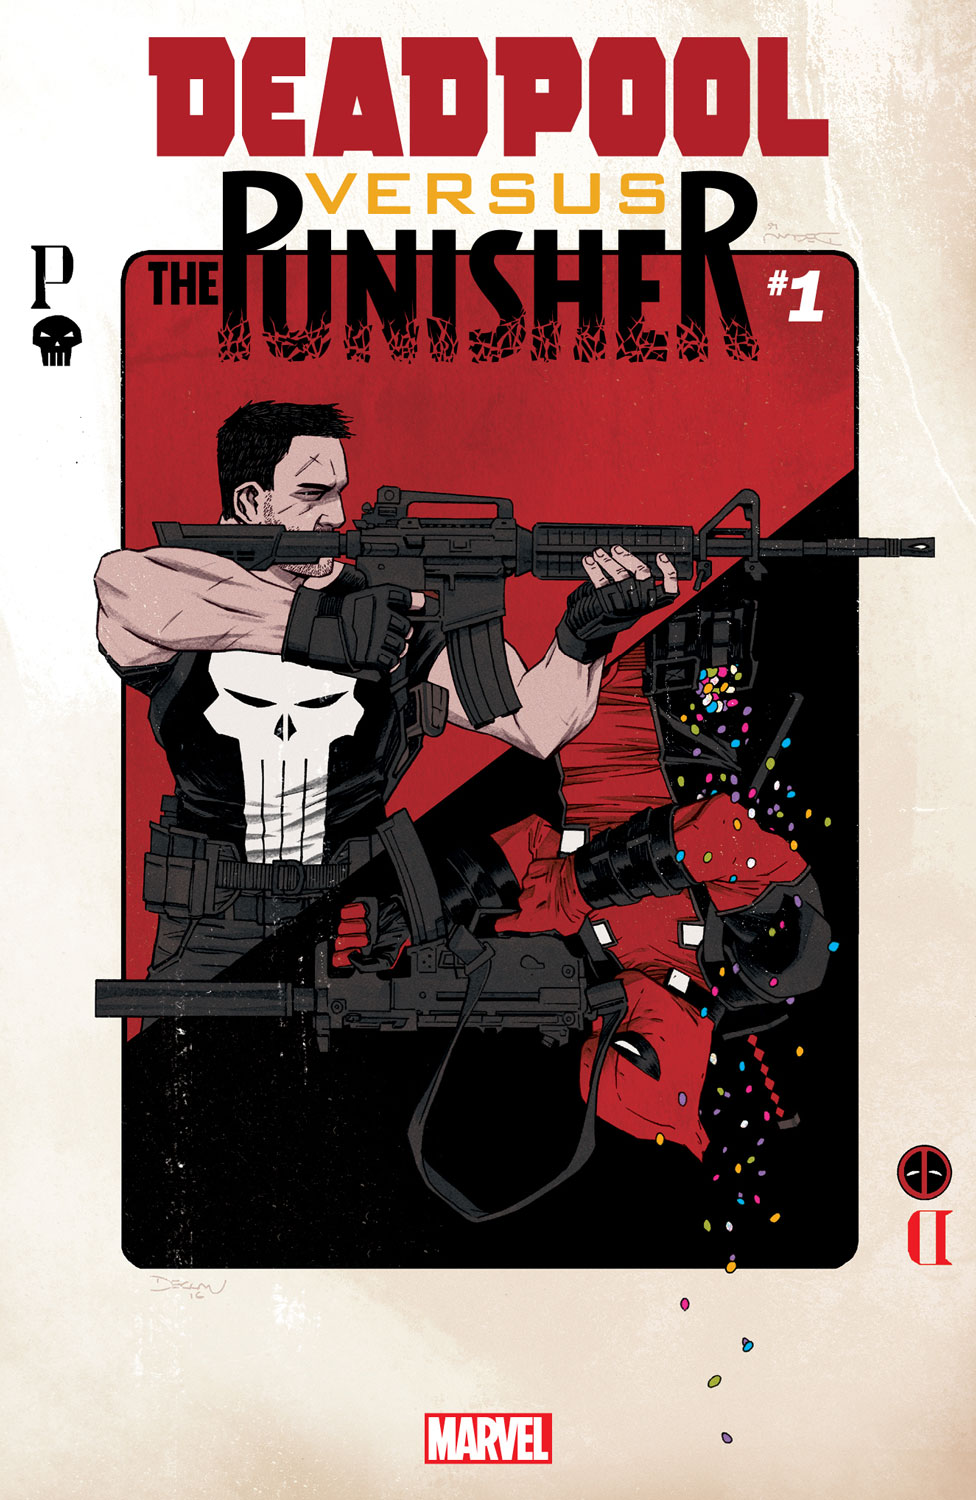 Marvel's Deadliest Denizens Square Off in DEADPOOL VS. THE PUNISHER #1!